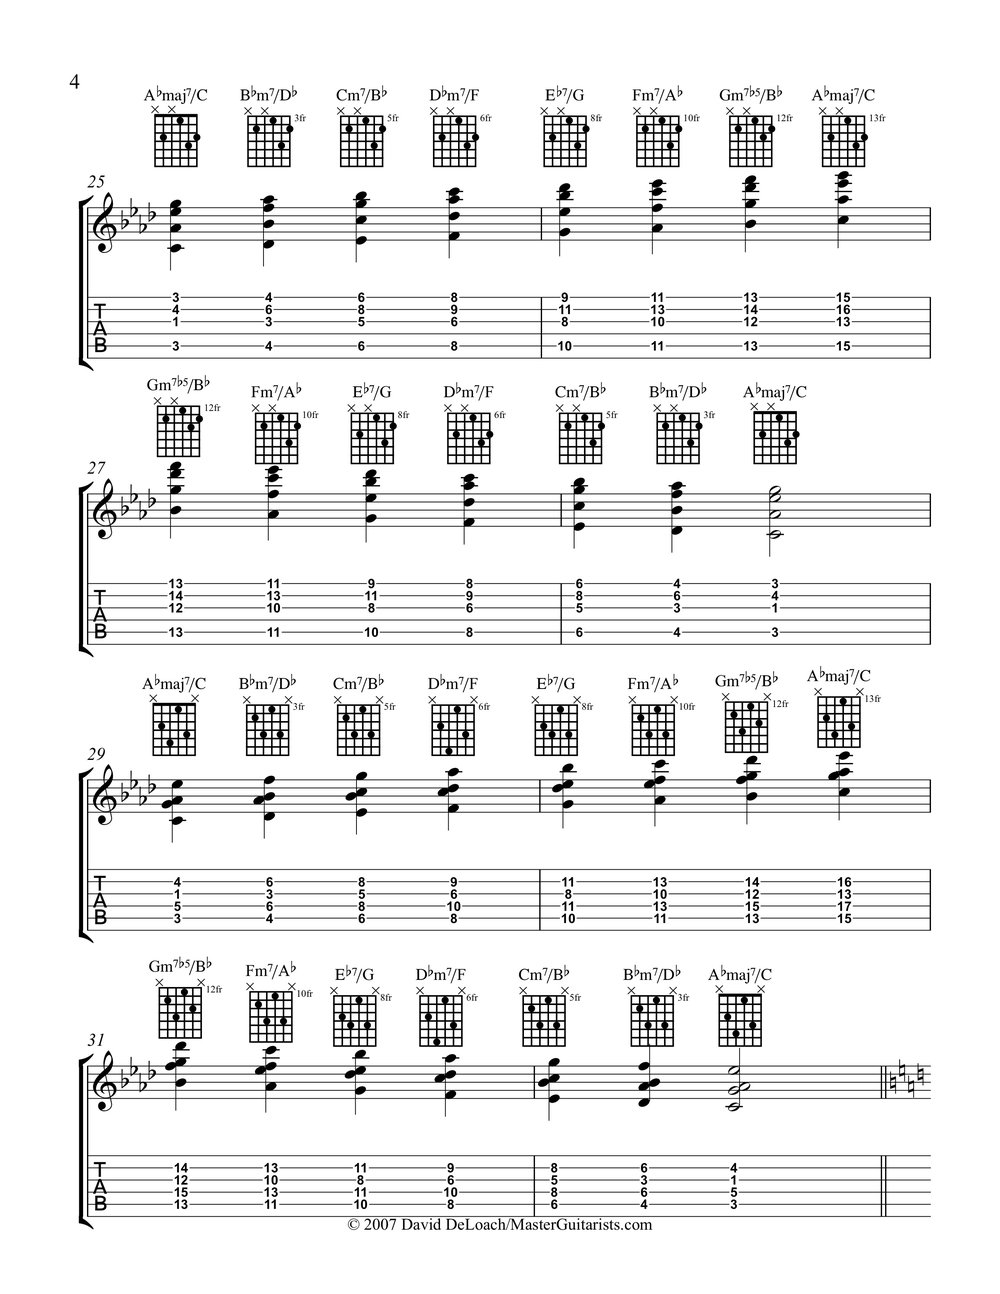 Diatonic 7th Chord Voicings of maj scale 1318186189 4-4.jpeg